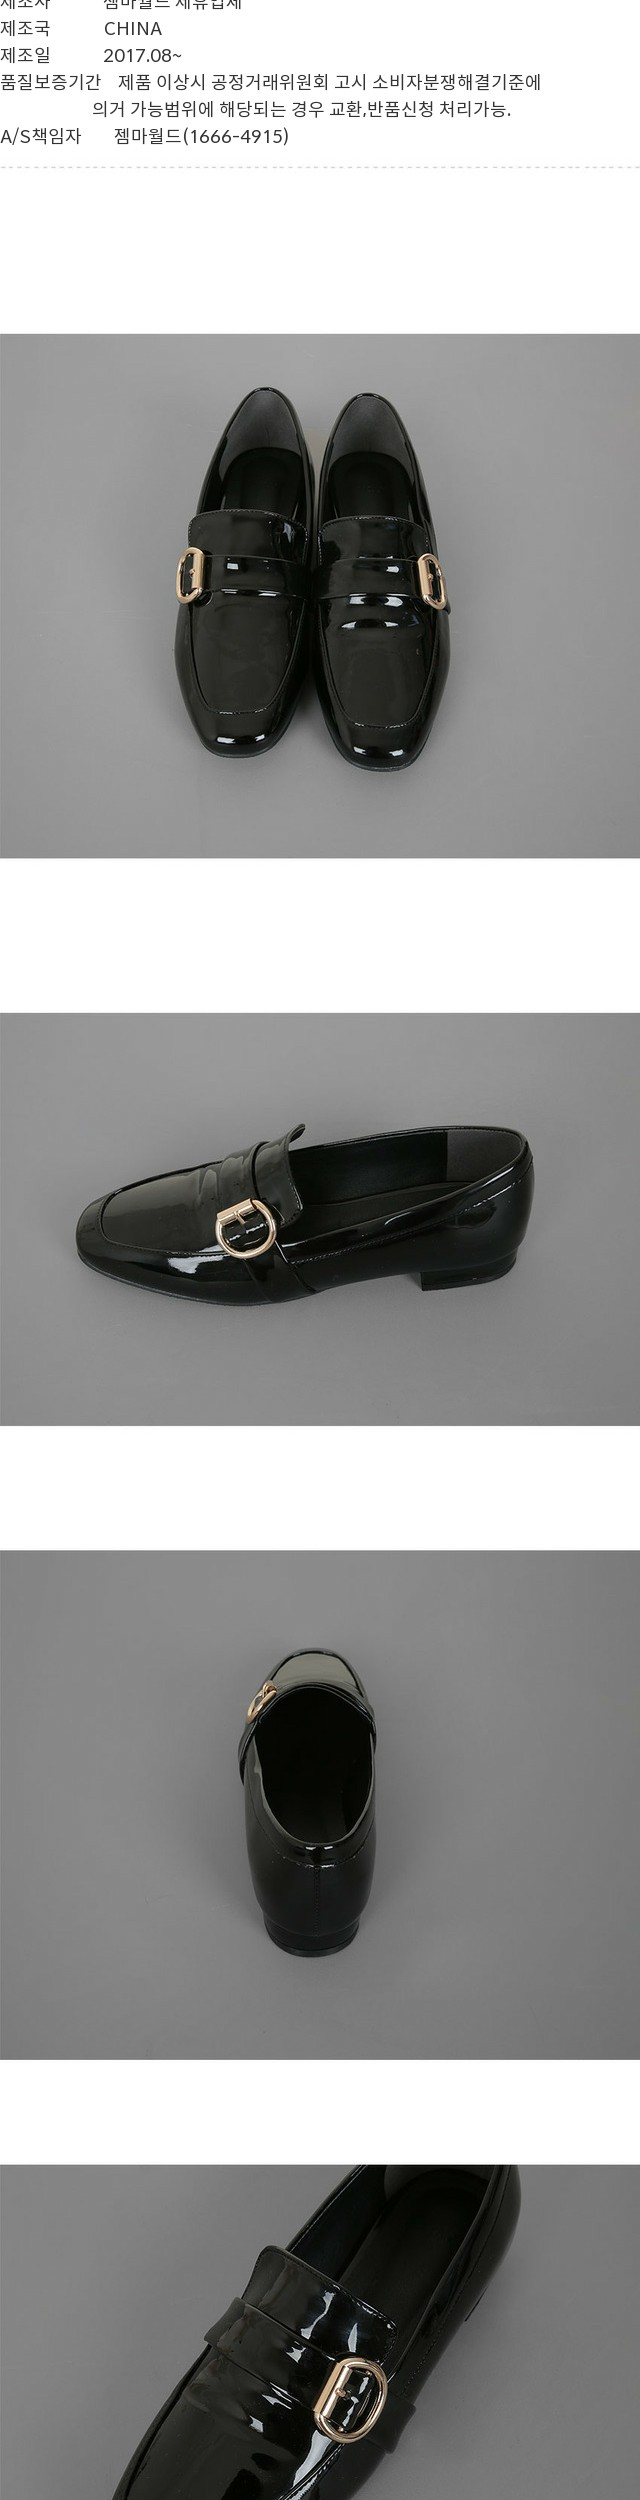 Clazzi-loafers